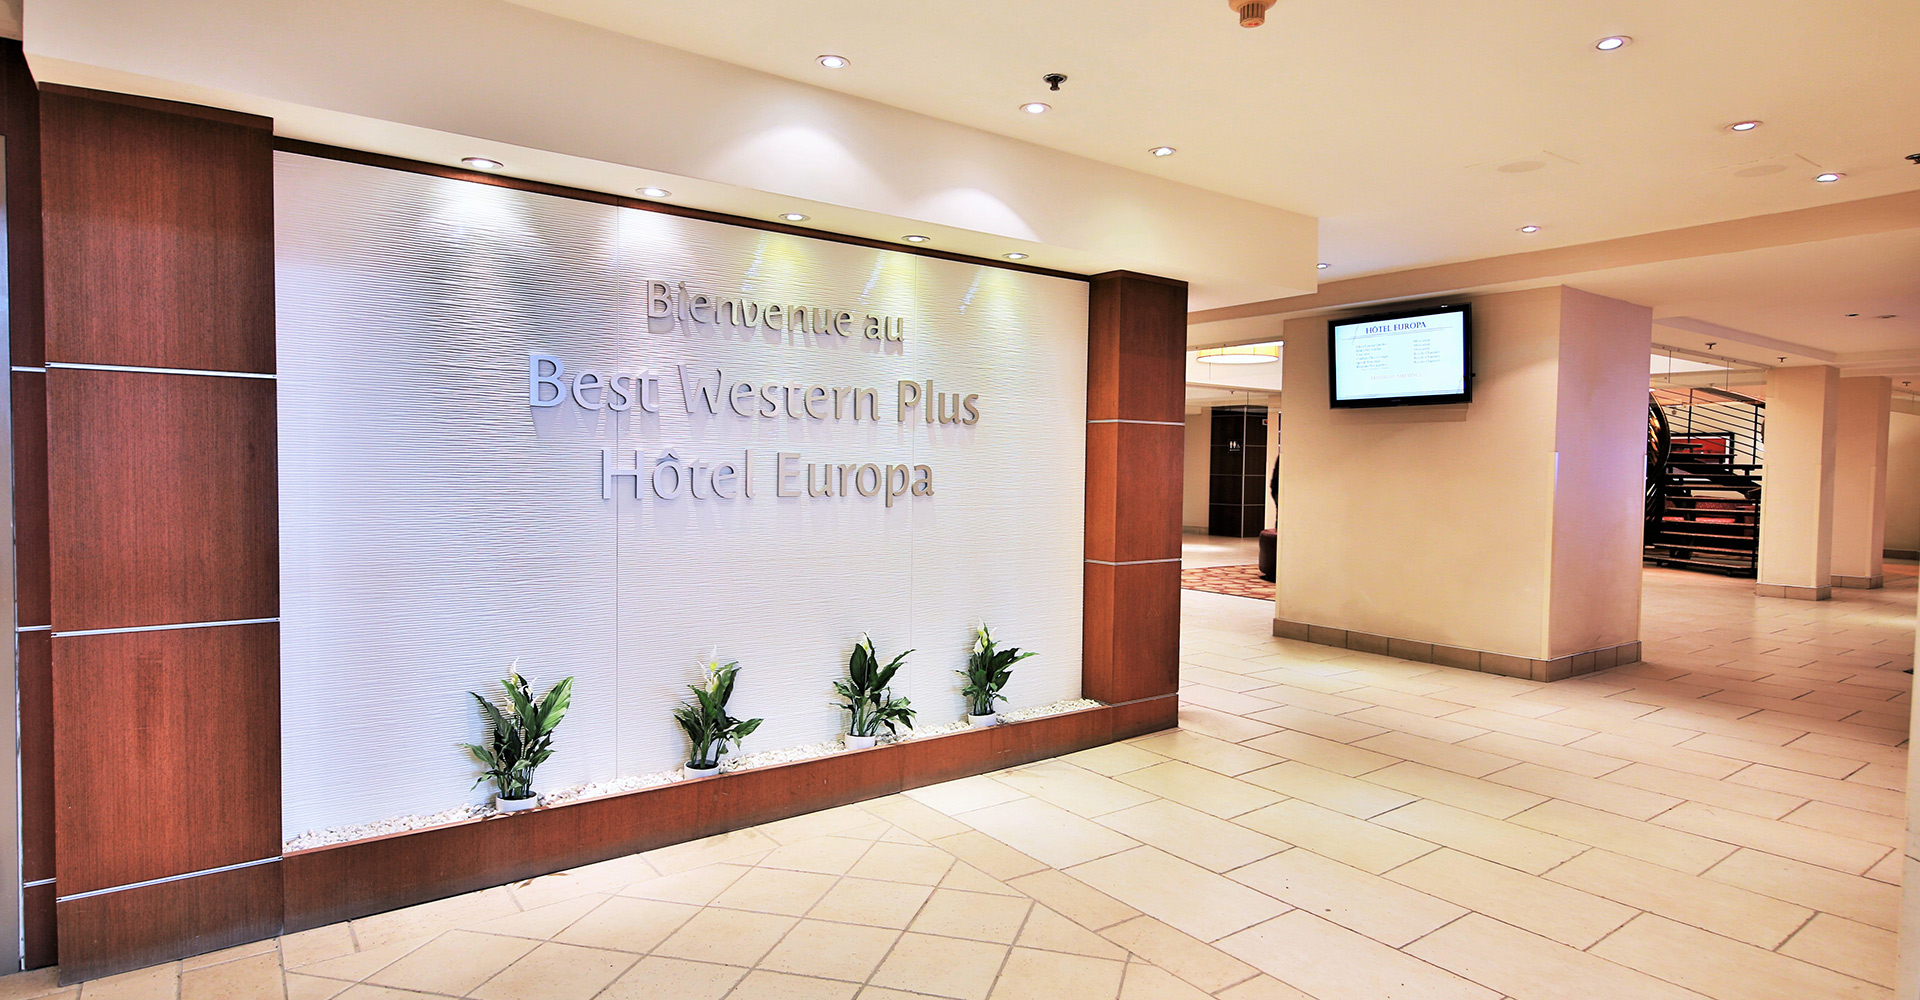 Best Western Plus Hotel Europa Entrance